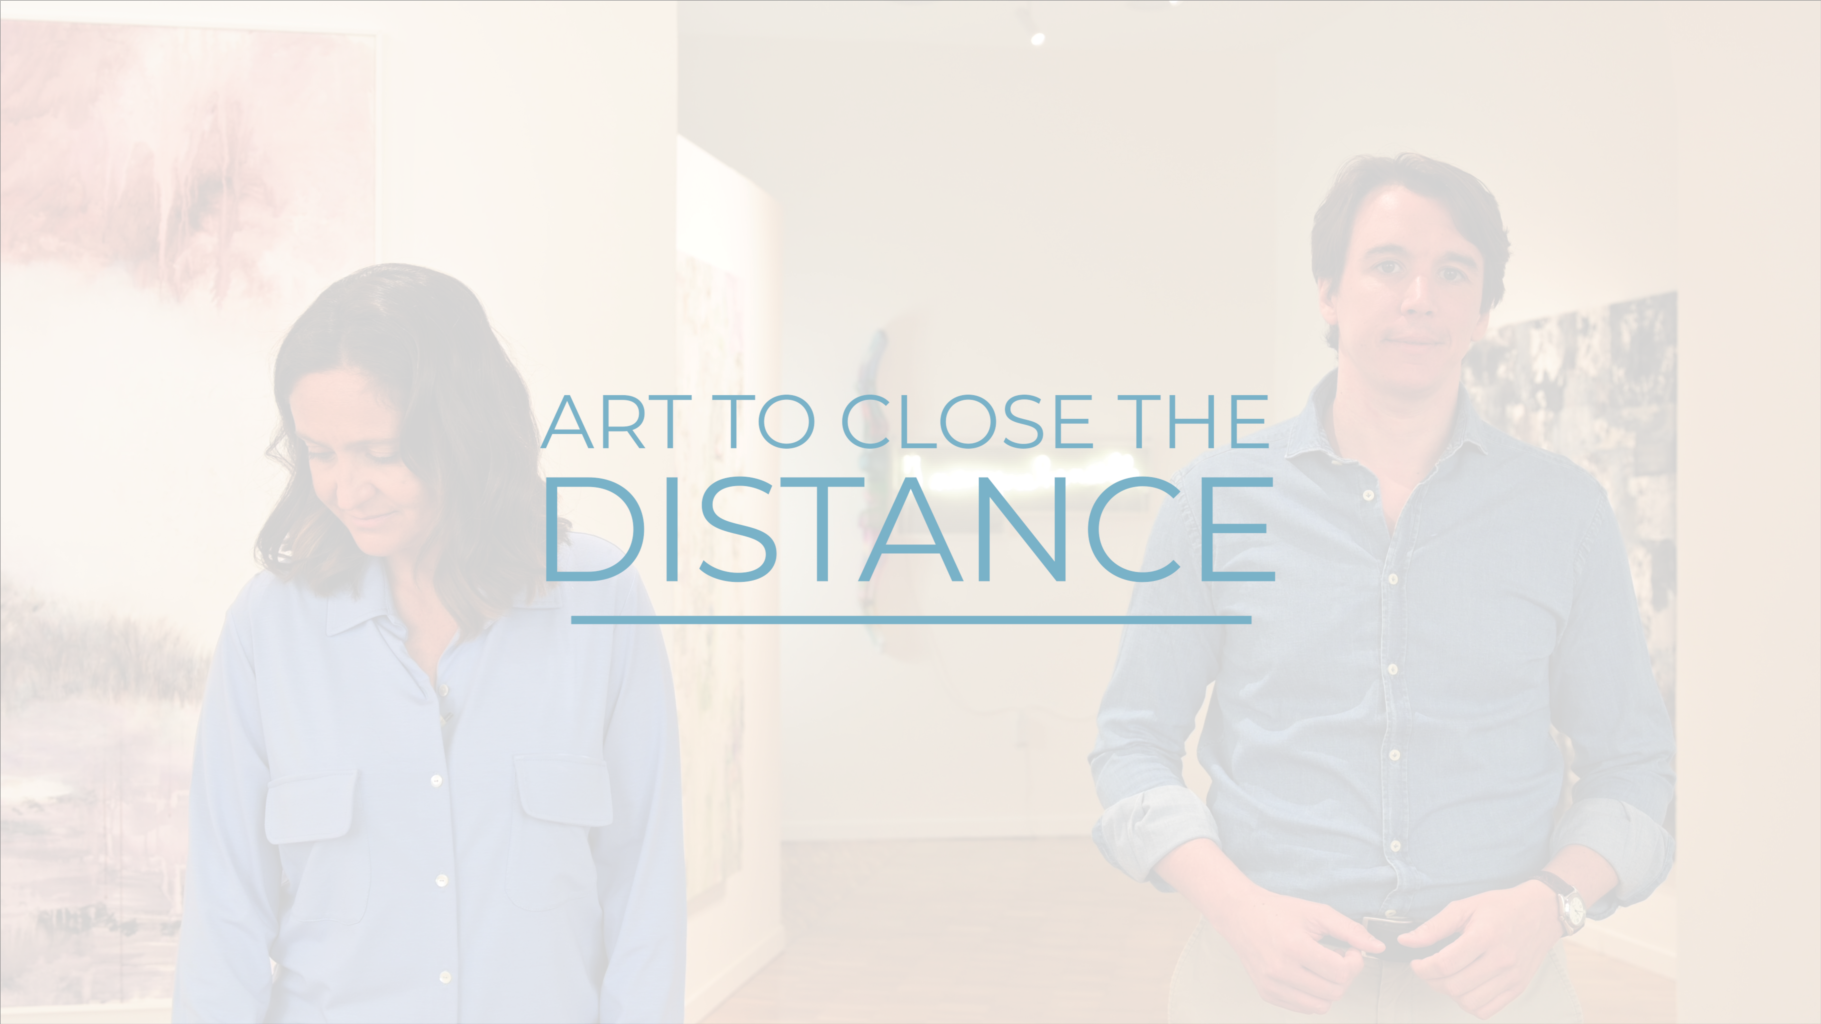 ART TO CLOSE THE DISTANCE